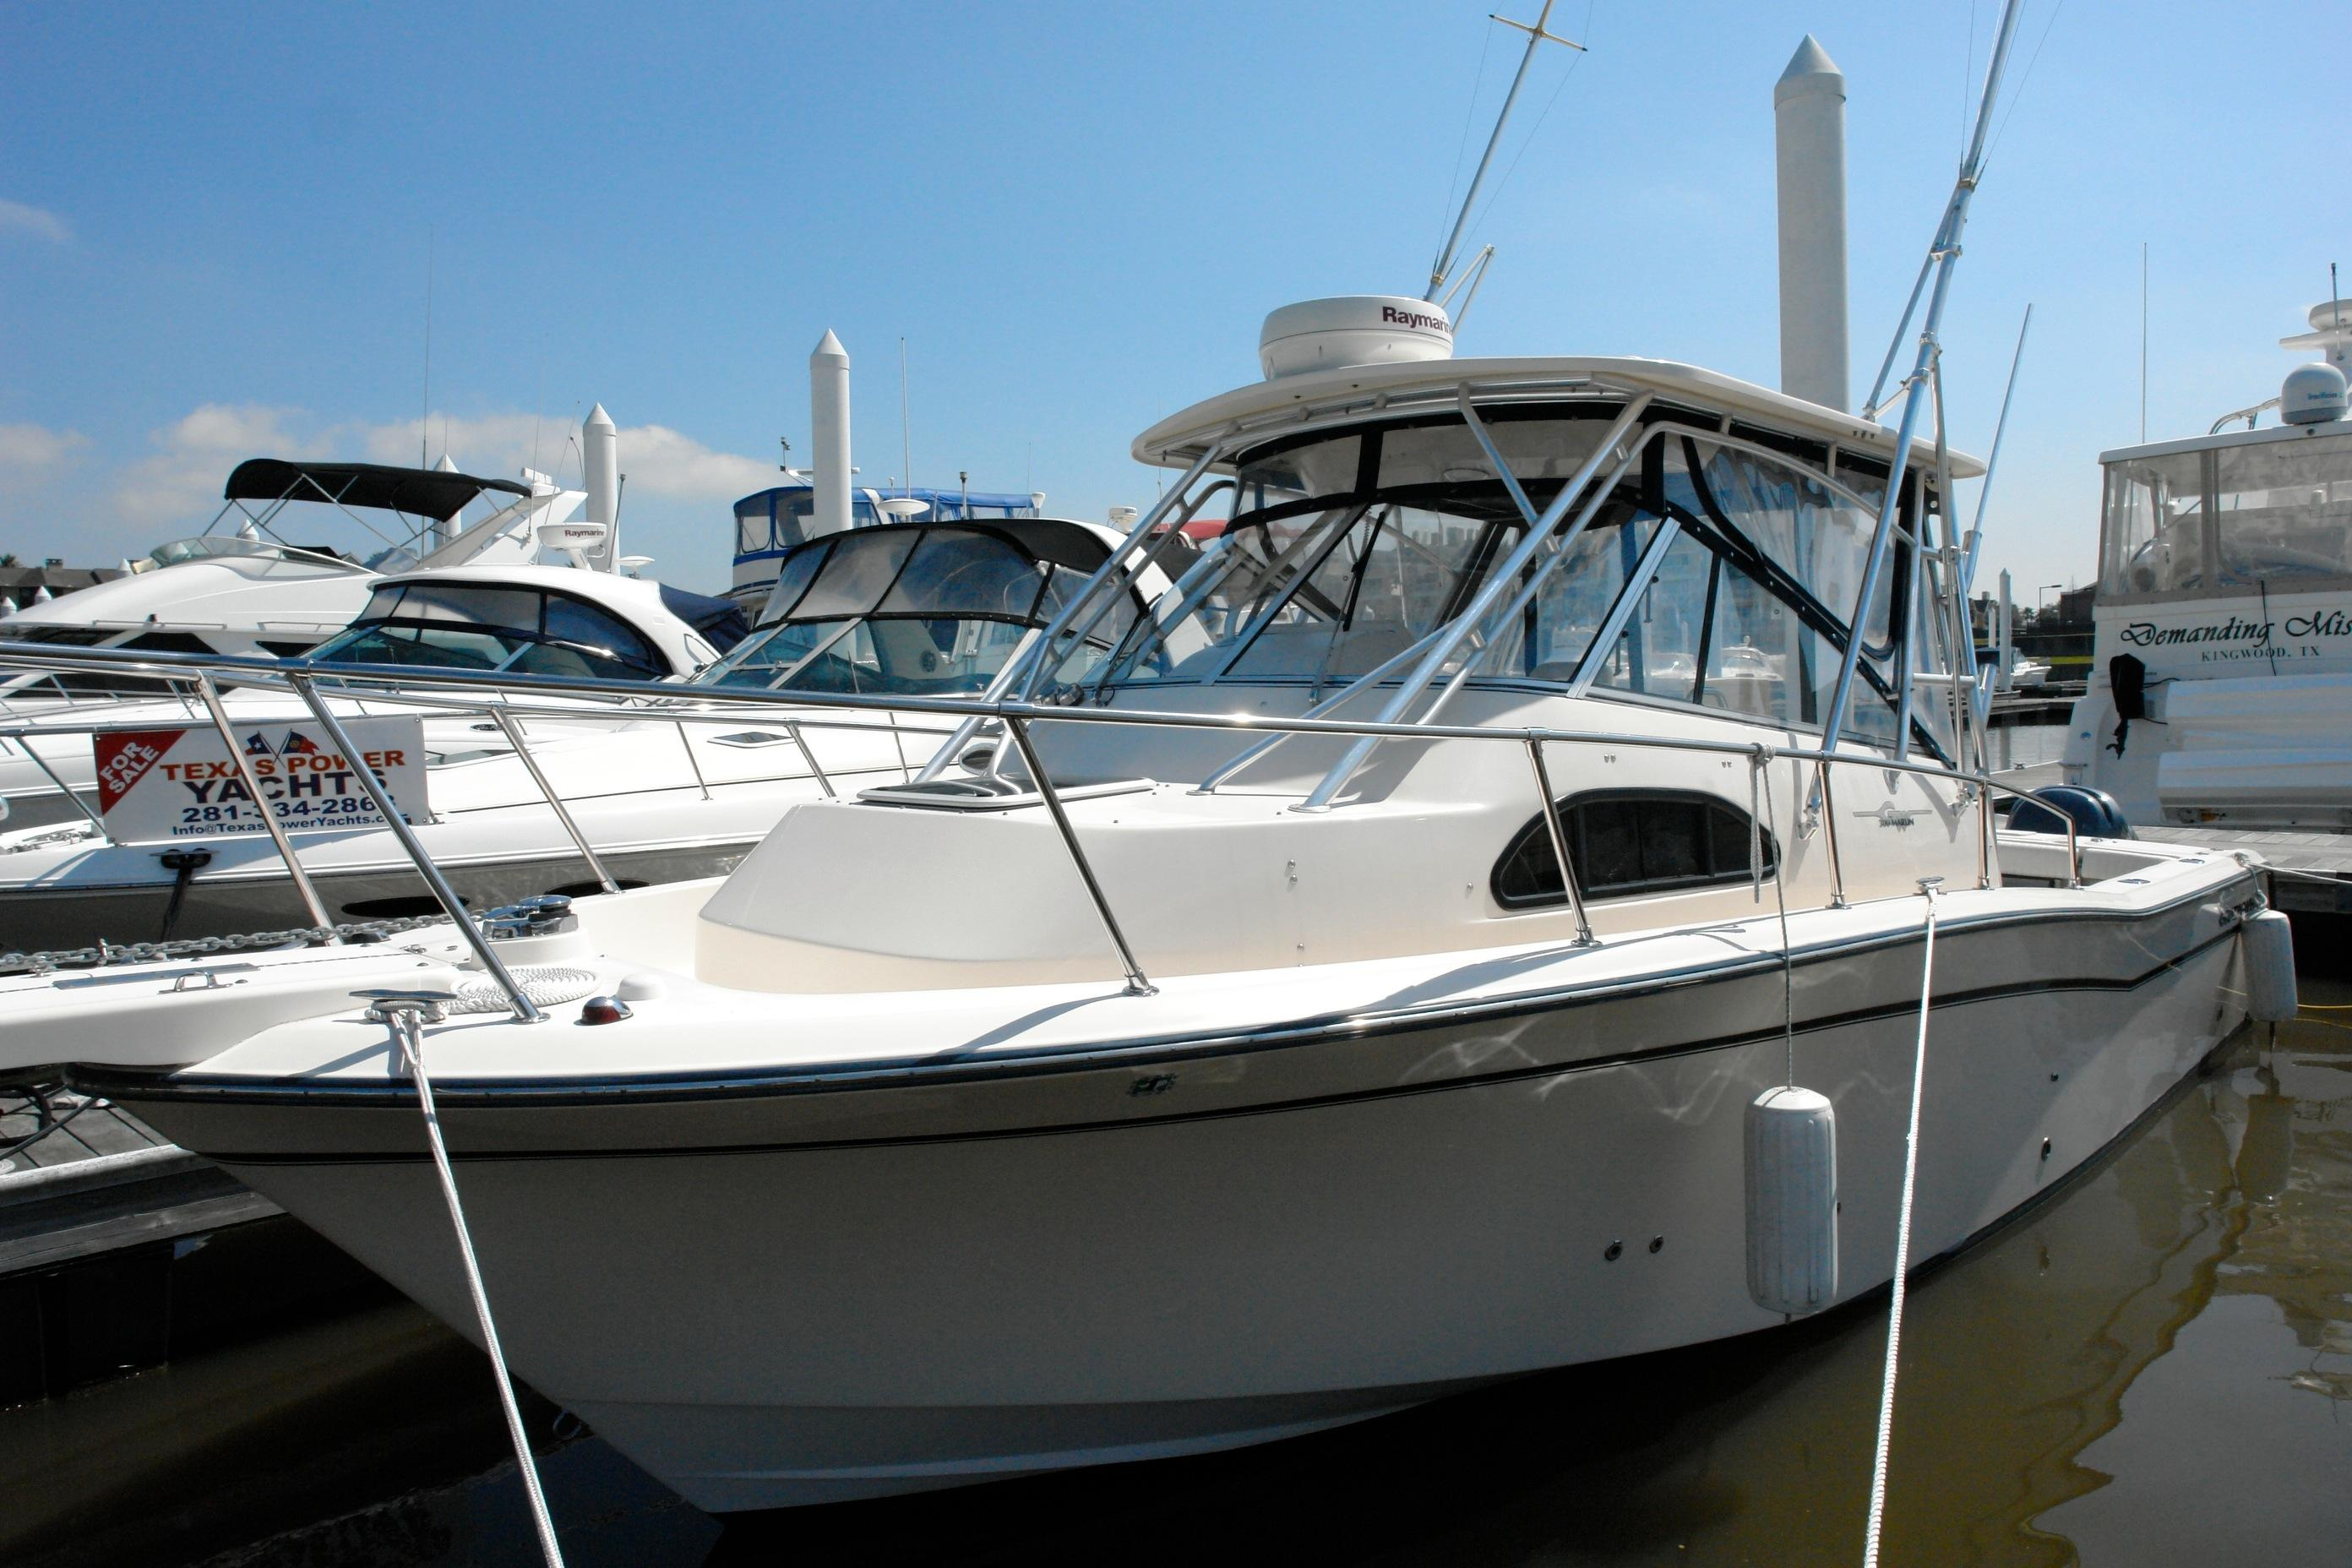 Marlin (TX) United States  city photos gallery : 2006 Grady White Marlin 300 Power Boat For Sale www.yachtworld.com